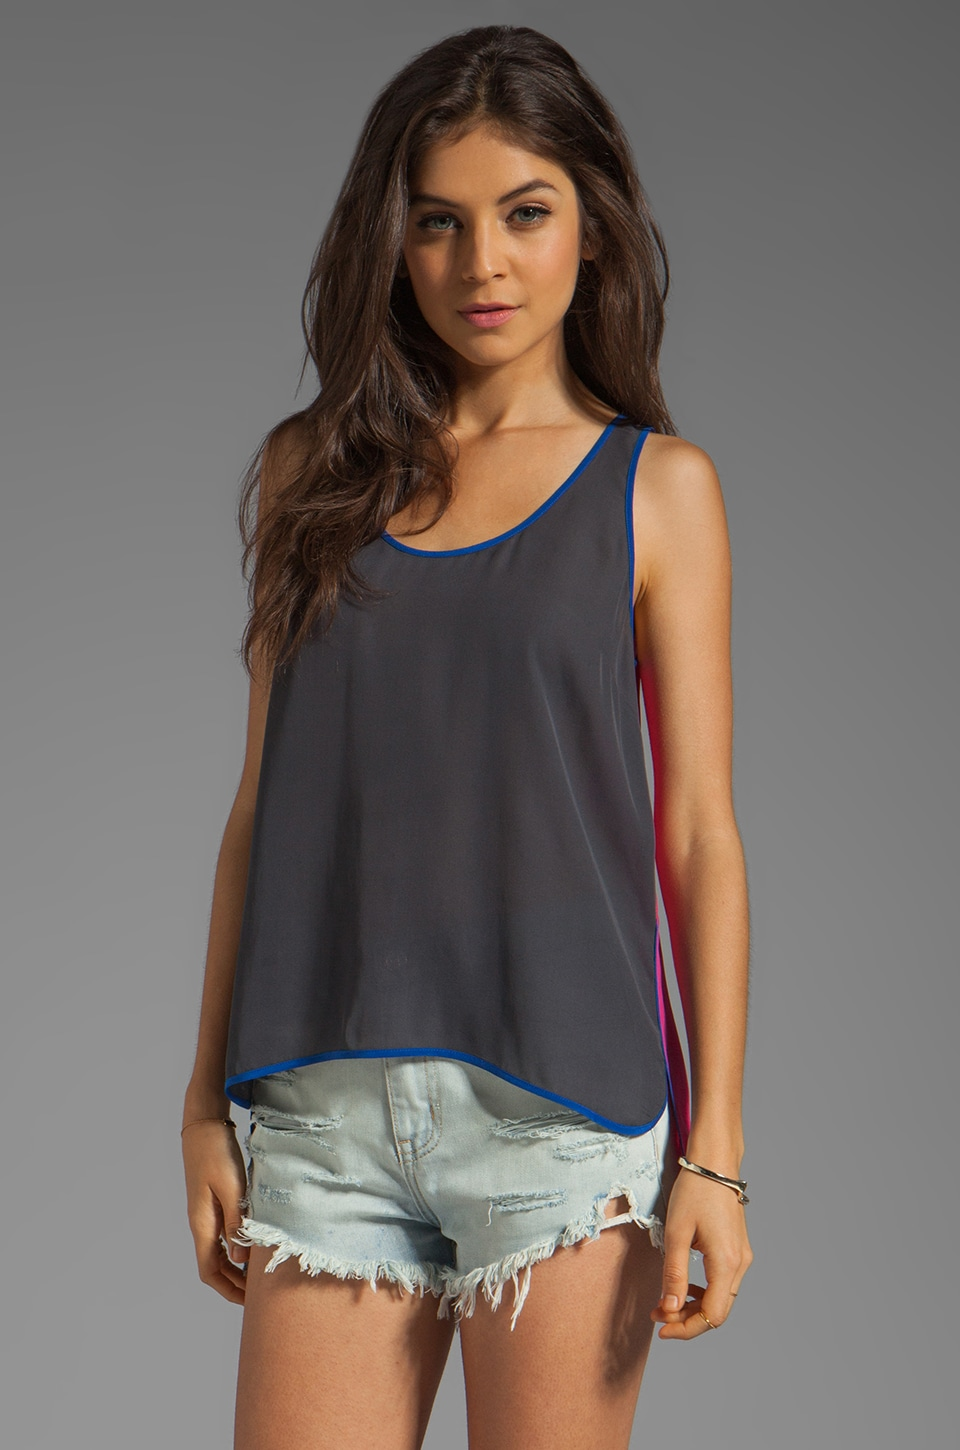 Central Park West Tahiti Colorblock Tank in Charcoal